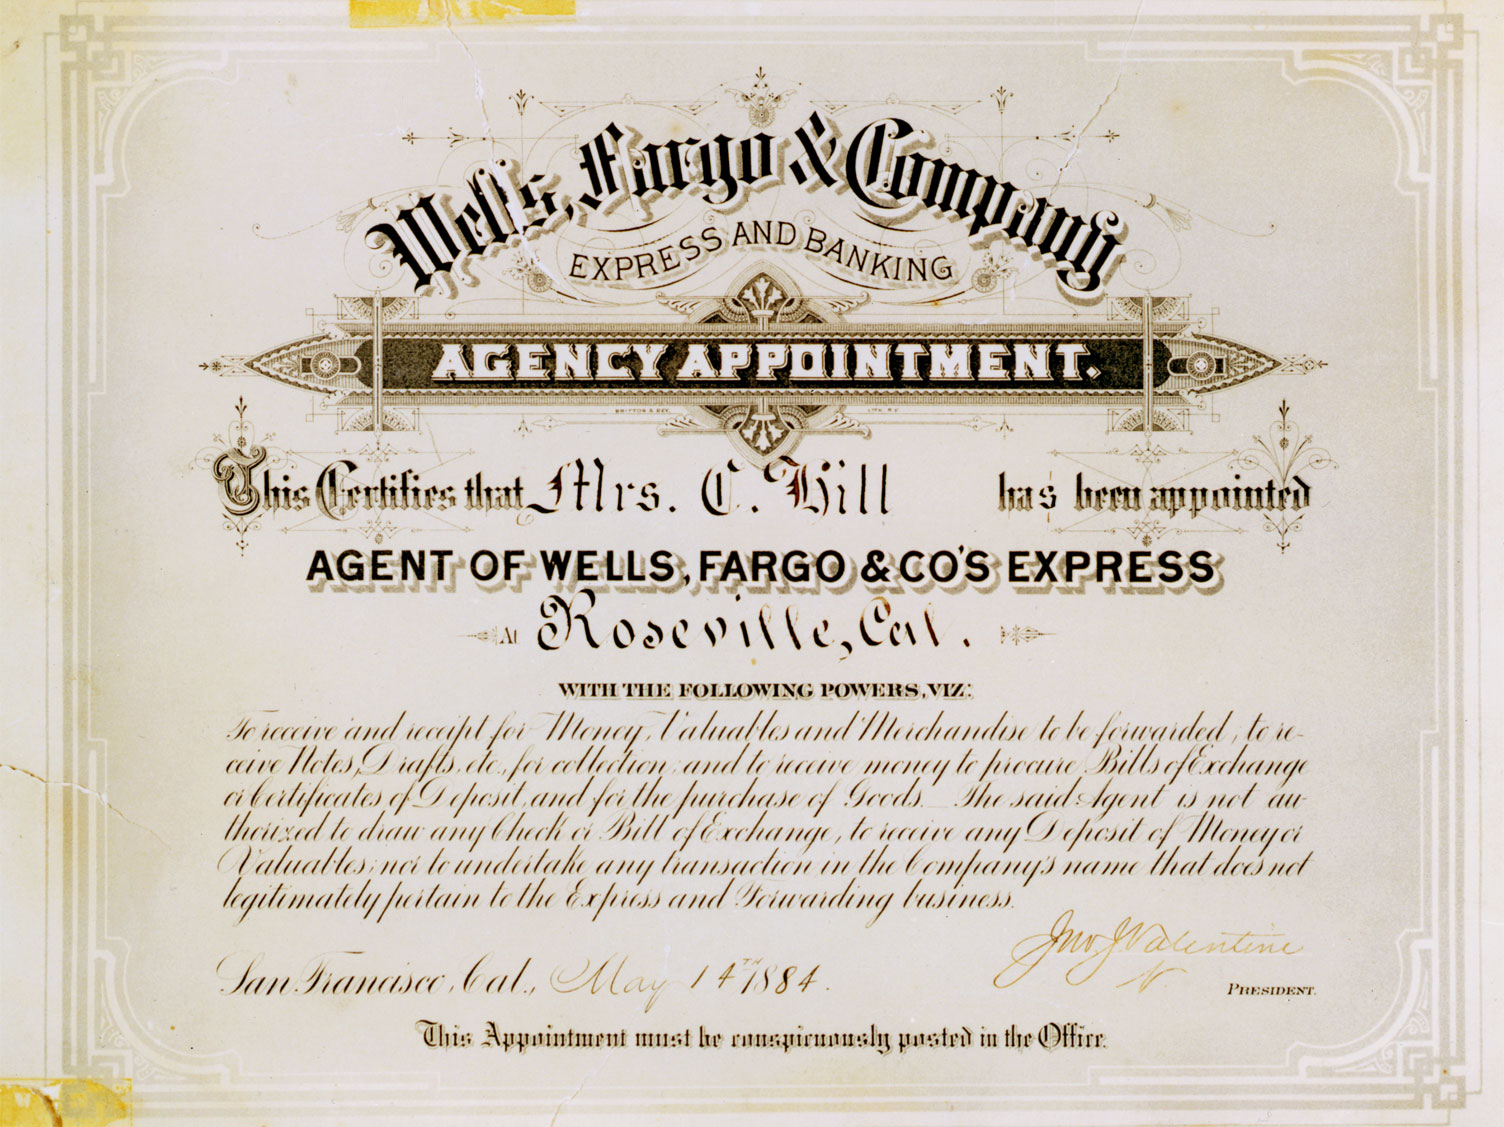 An aged document says: Wells Fargo & Company Express and Banking Agency Appointment. This certifies that Mrs. C. Hill has been appointed agent of Wells Fargo & Co.'s Express Roseville, Cal.